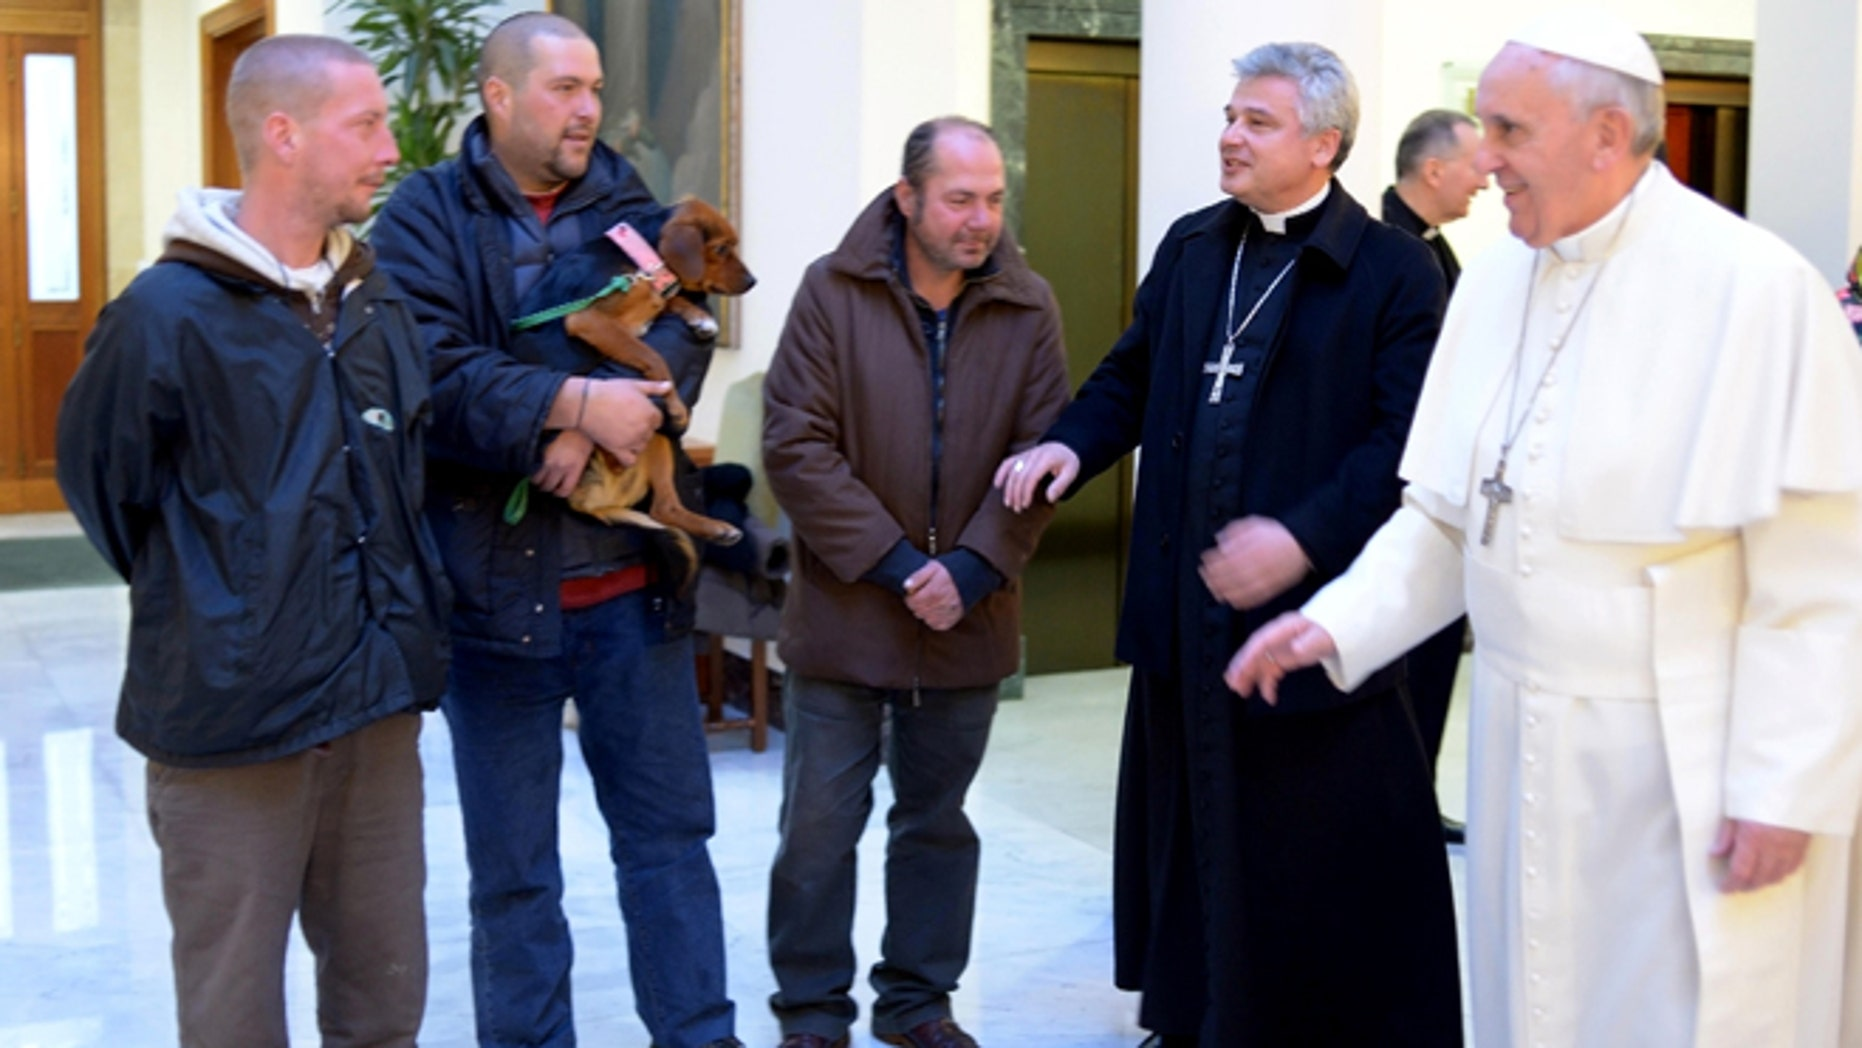 Dec. 17, 2013: In this picture provided by the Vatican newspaper L'Osservatore Romano, Pope Francis, right, is flanked by Vatican Almoner Archbishop Konrad Krajewski as he welcomes four men at the Vatican.